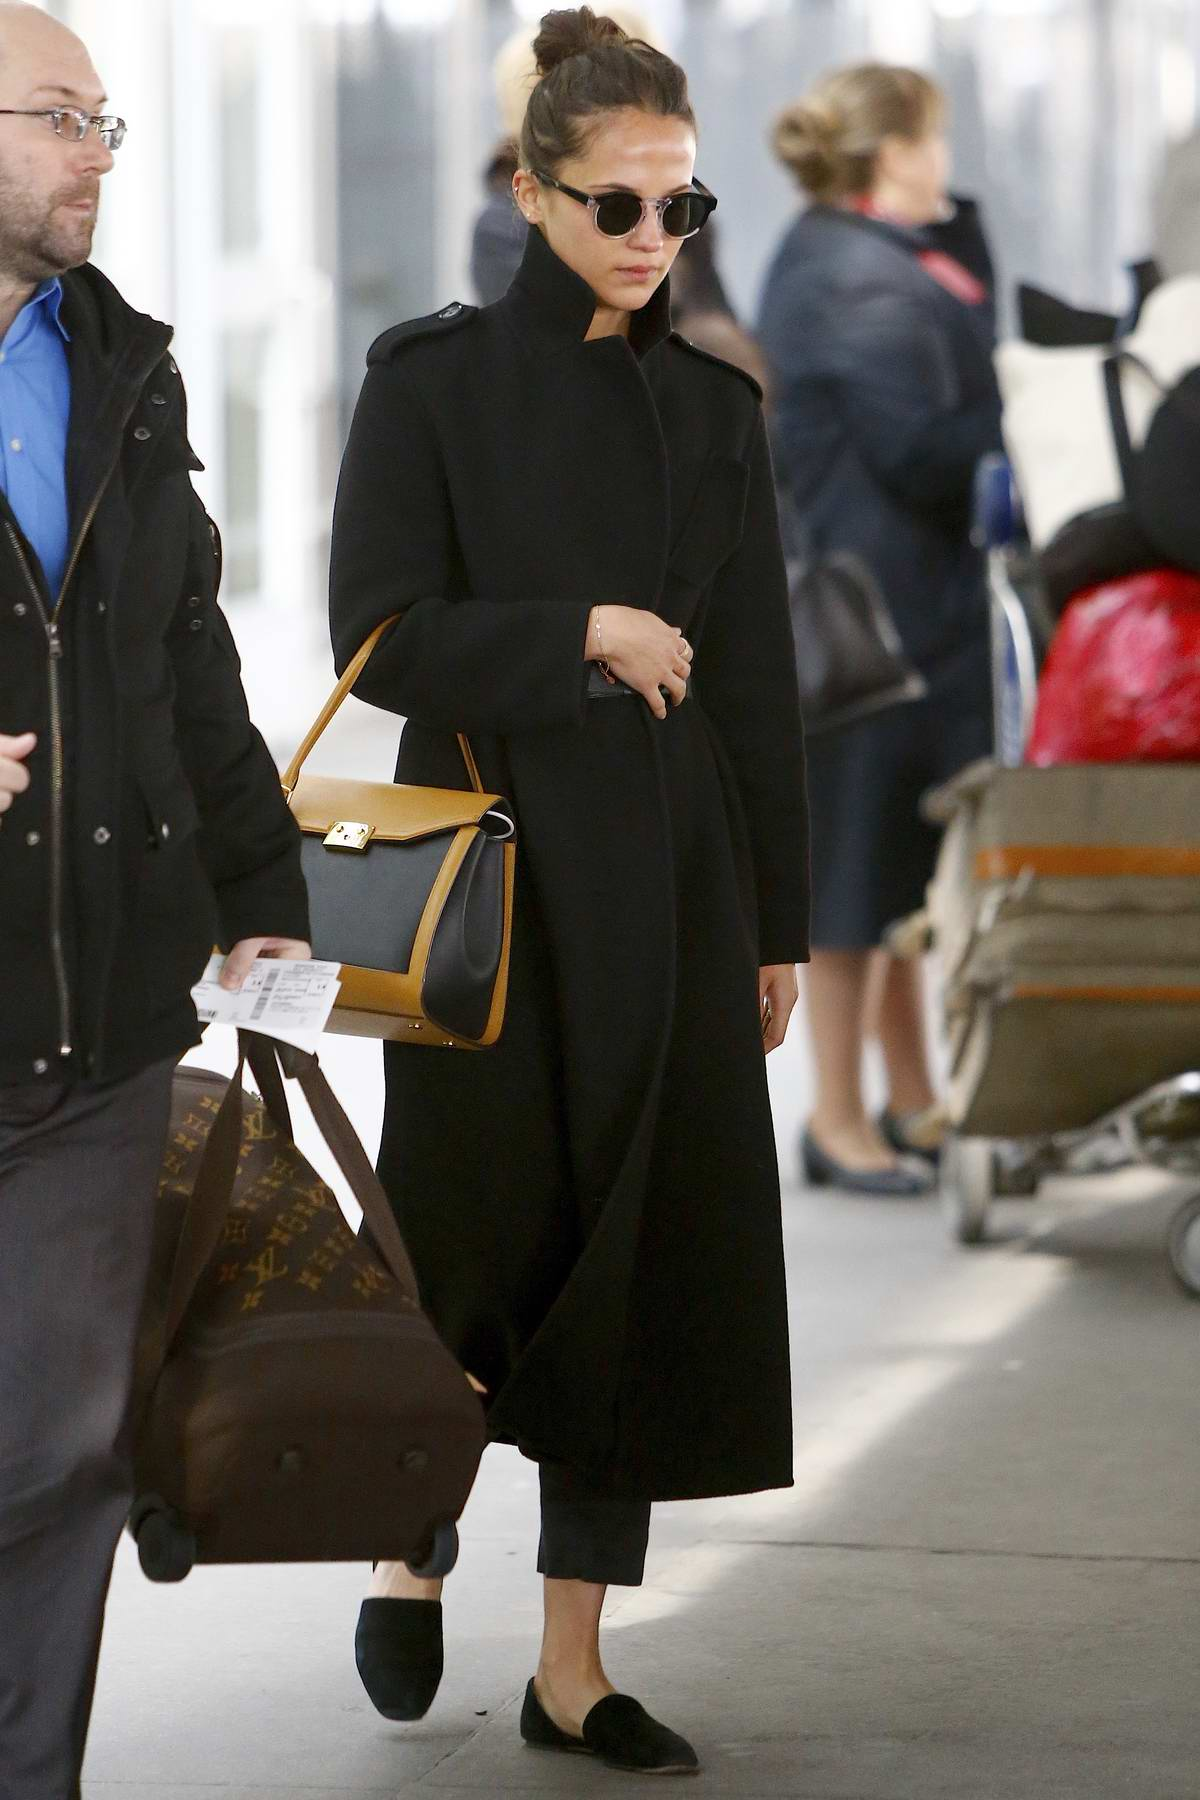 Alicia Vikander dressed in all black as she arrives at JFK airport in New York City